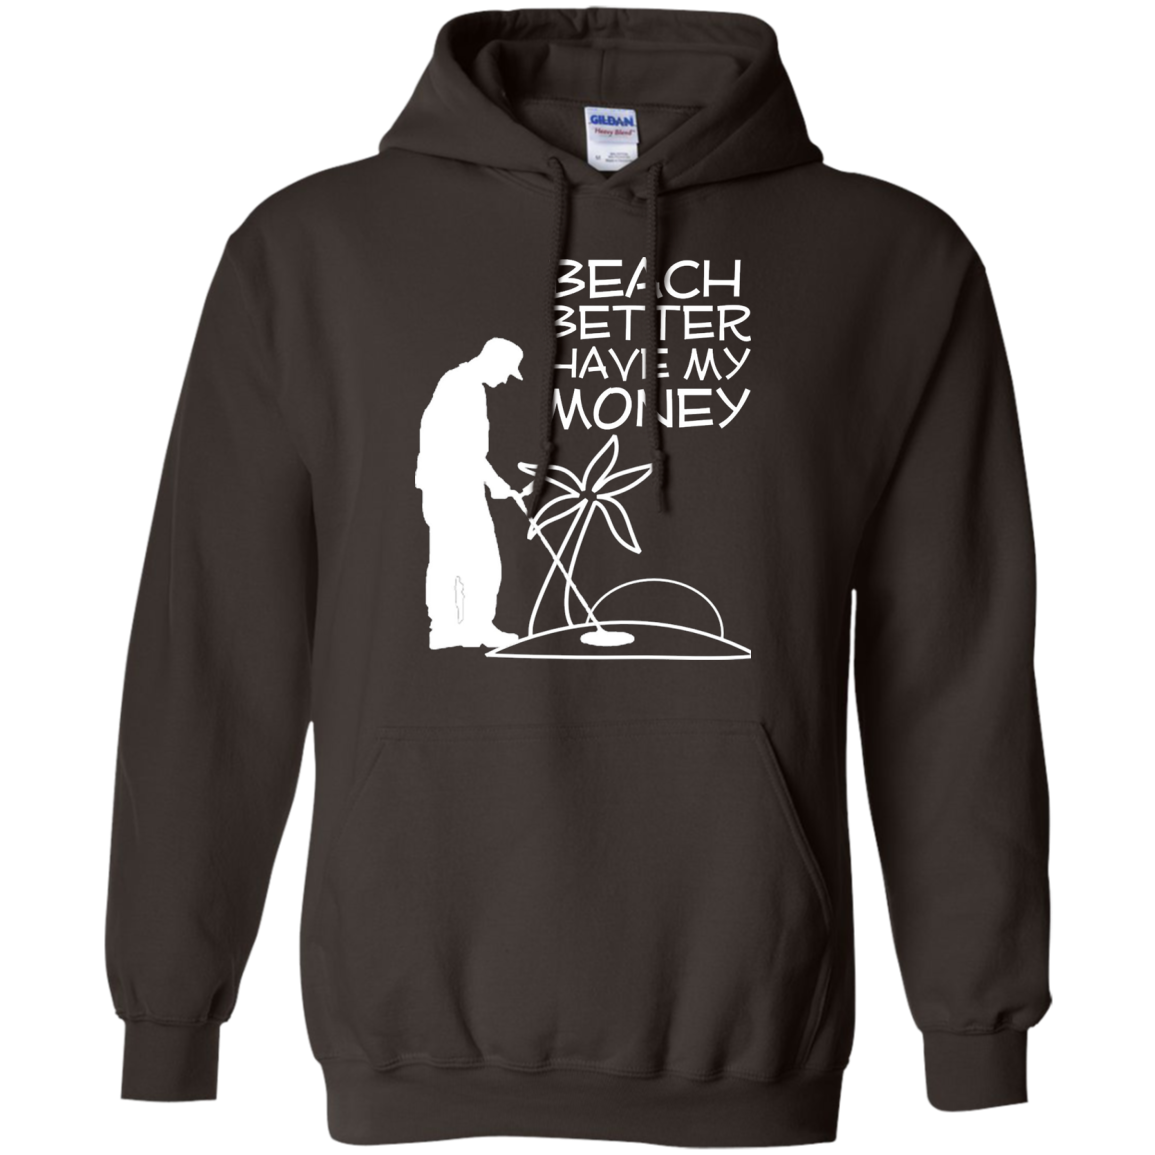 Beach better Have My Money - Funny Beach Humor T-Shirt